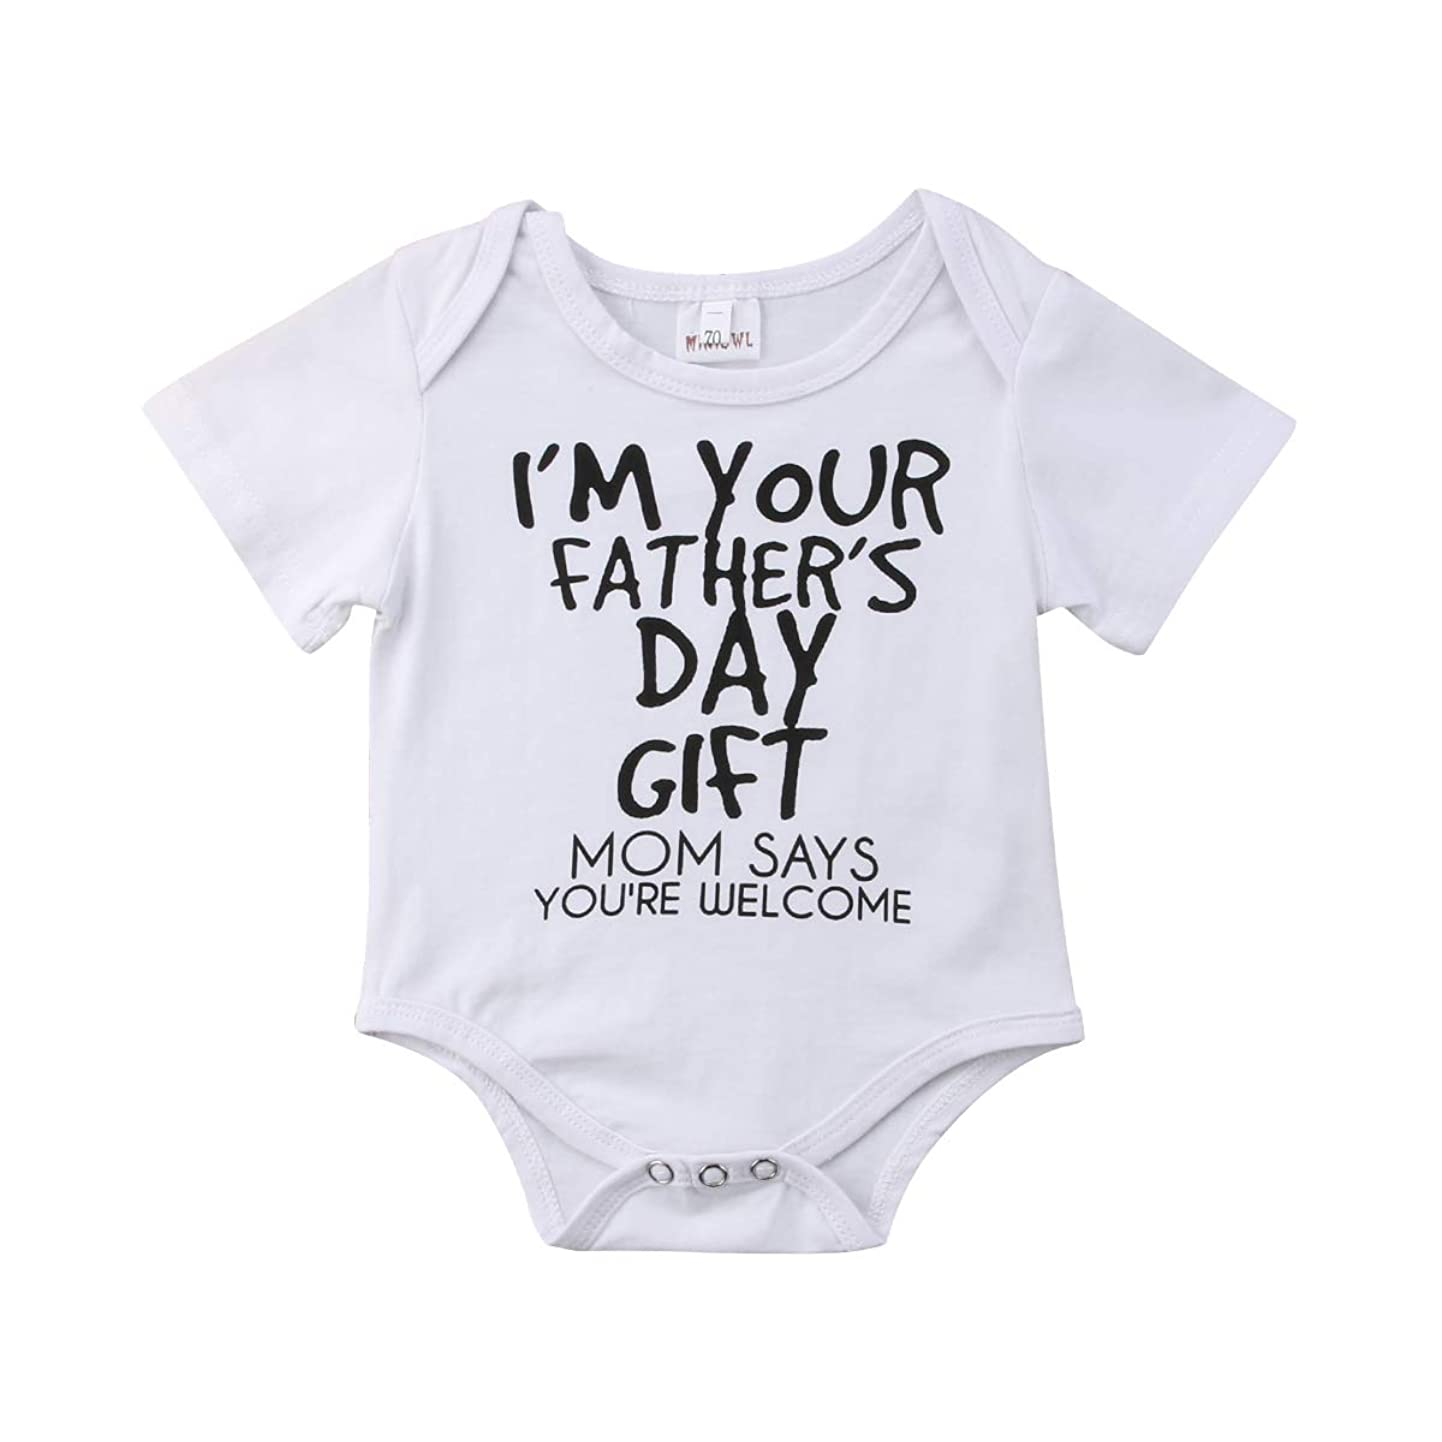 Newborn Infant Baby Girl Boy Father's Day Bodysuit Romper Tops Short Sleeve Summer Outfit mamimylvceg3